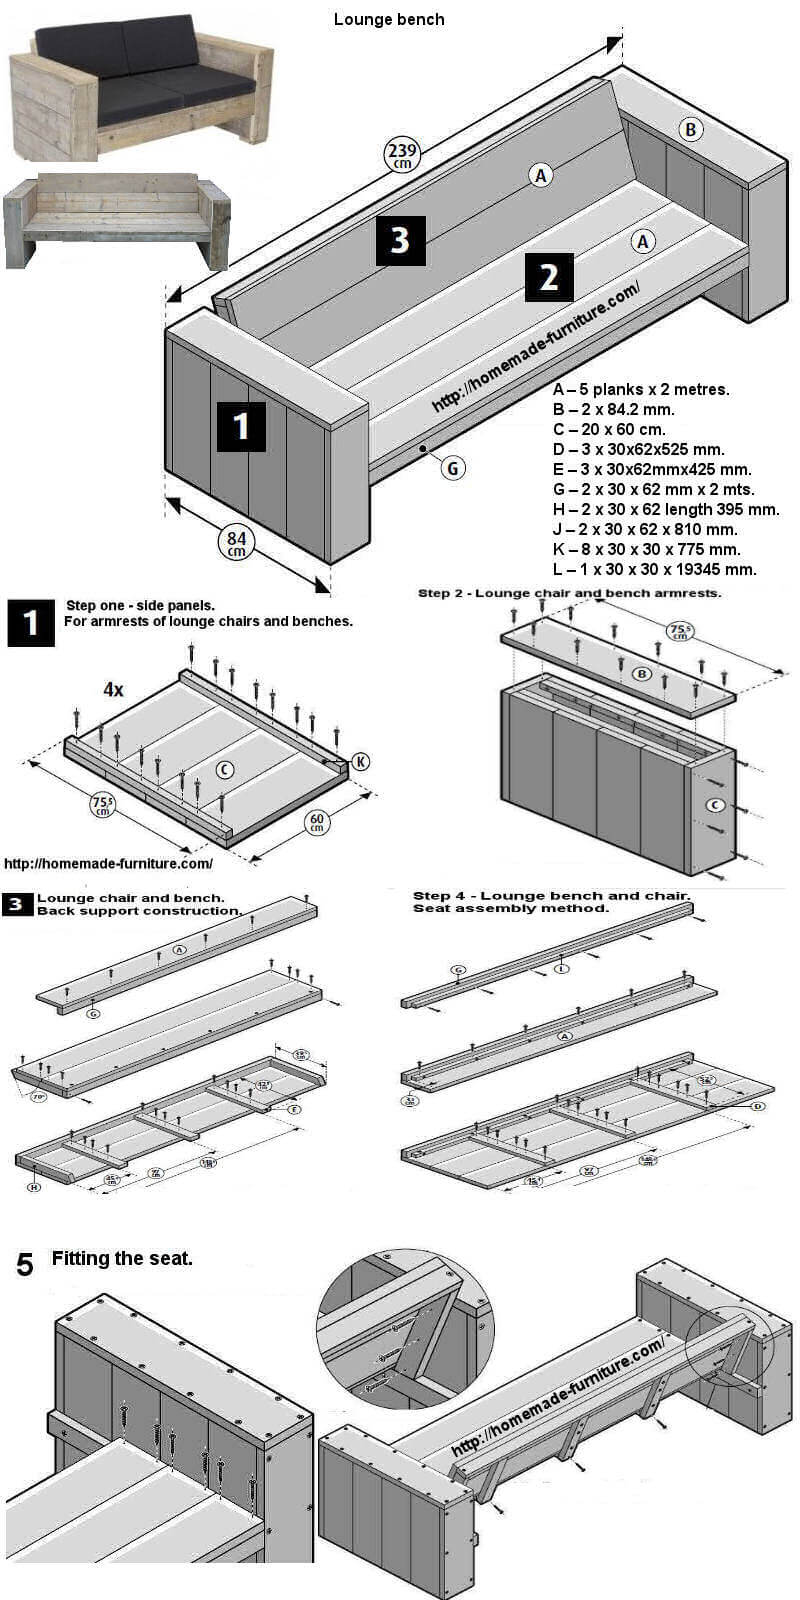 Lounge Furniture Construction Drawings For Planks Of Old